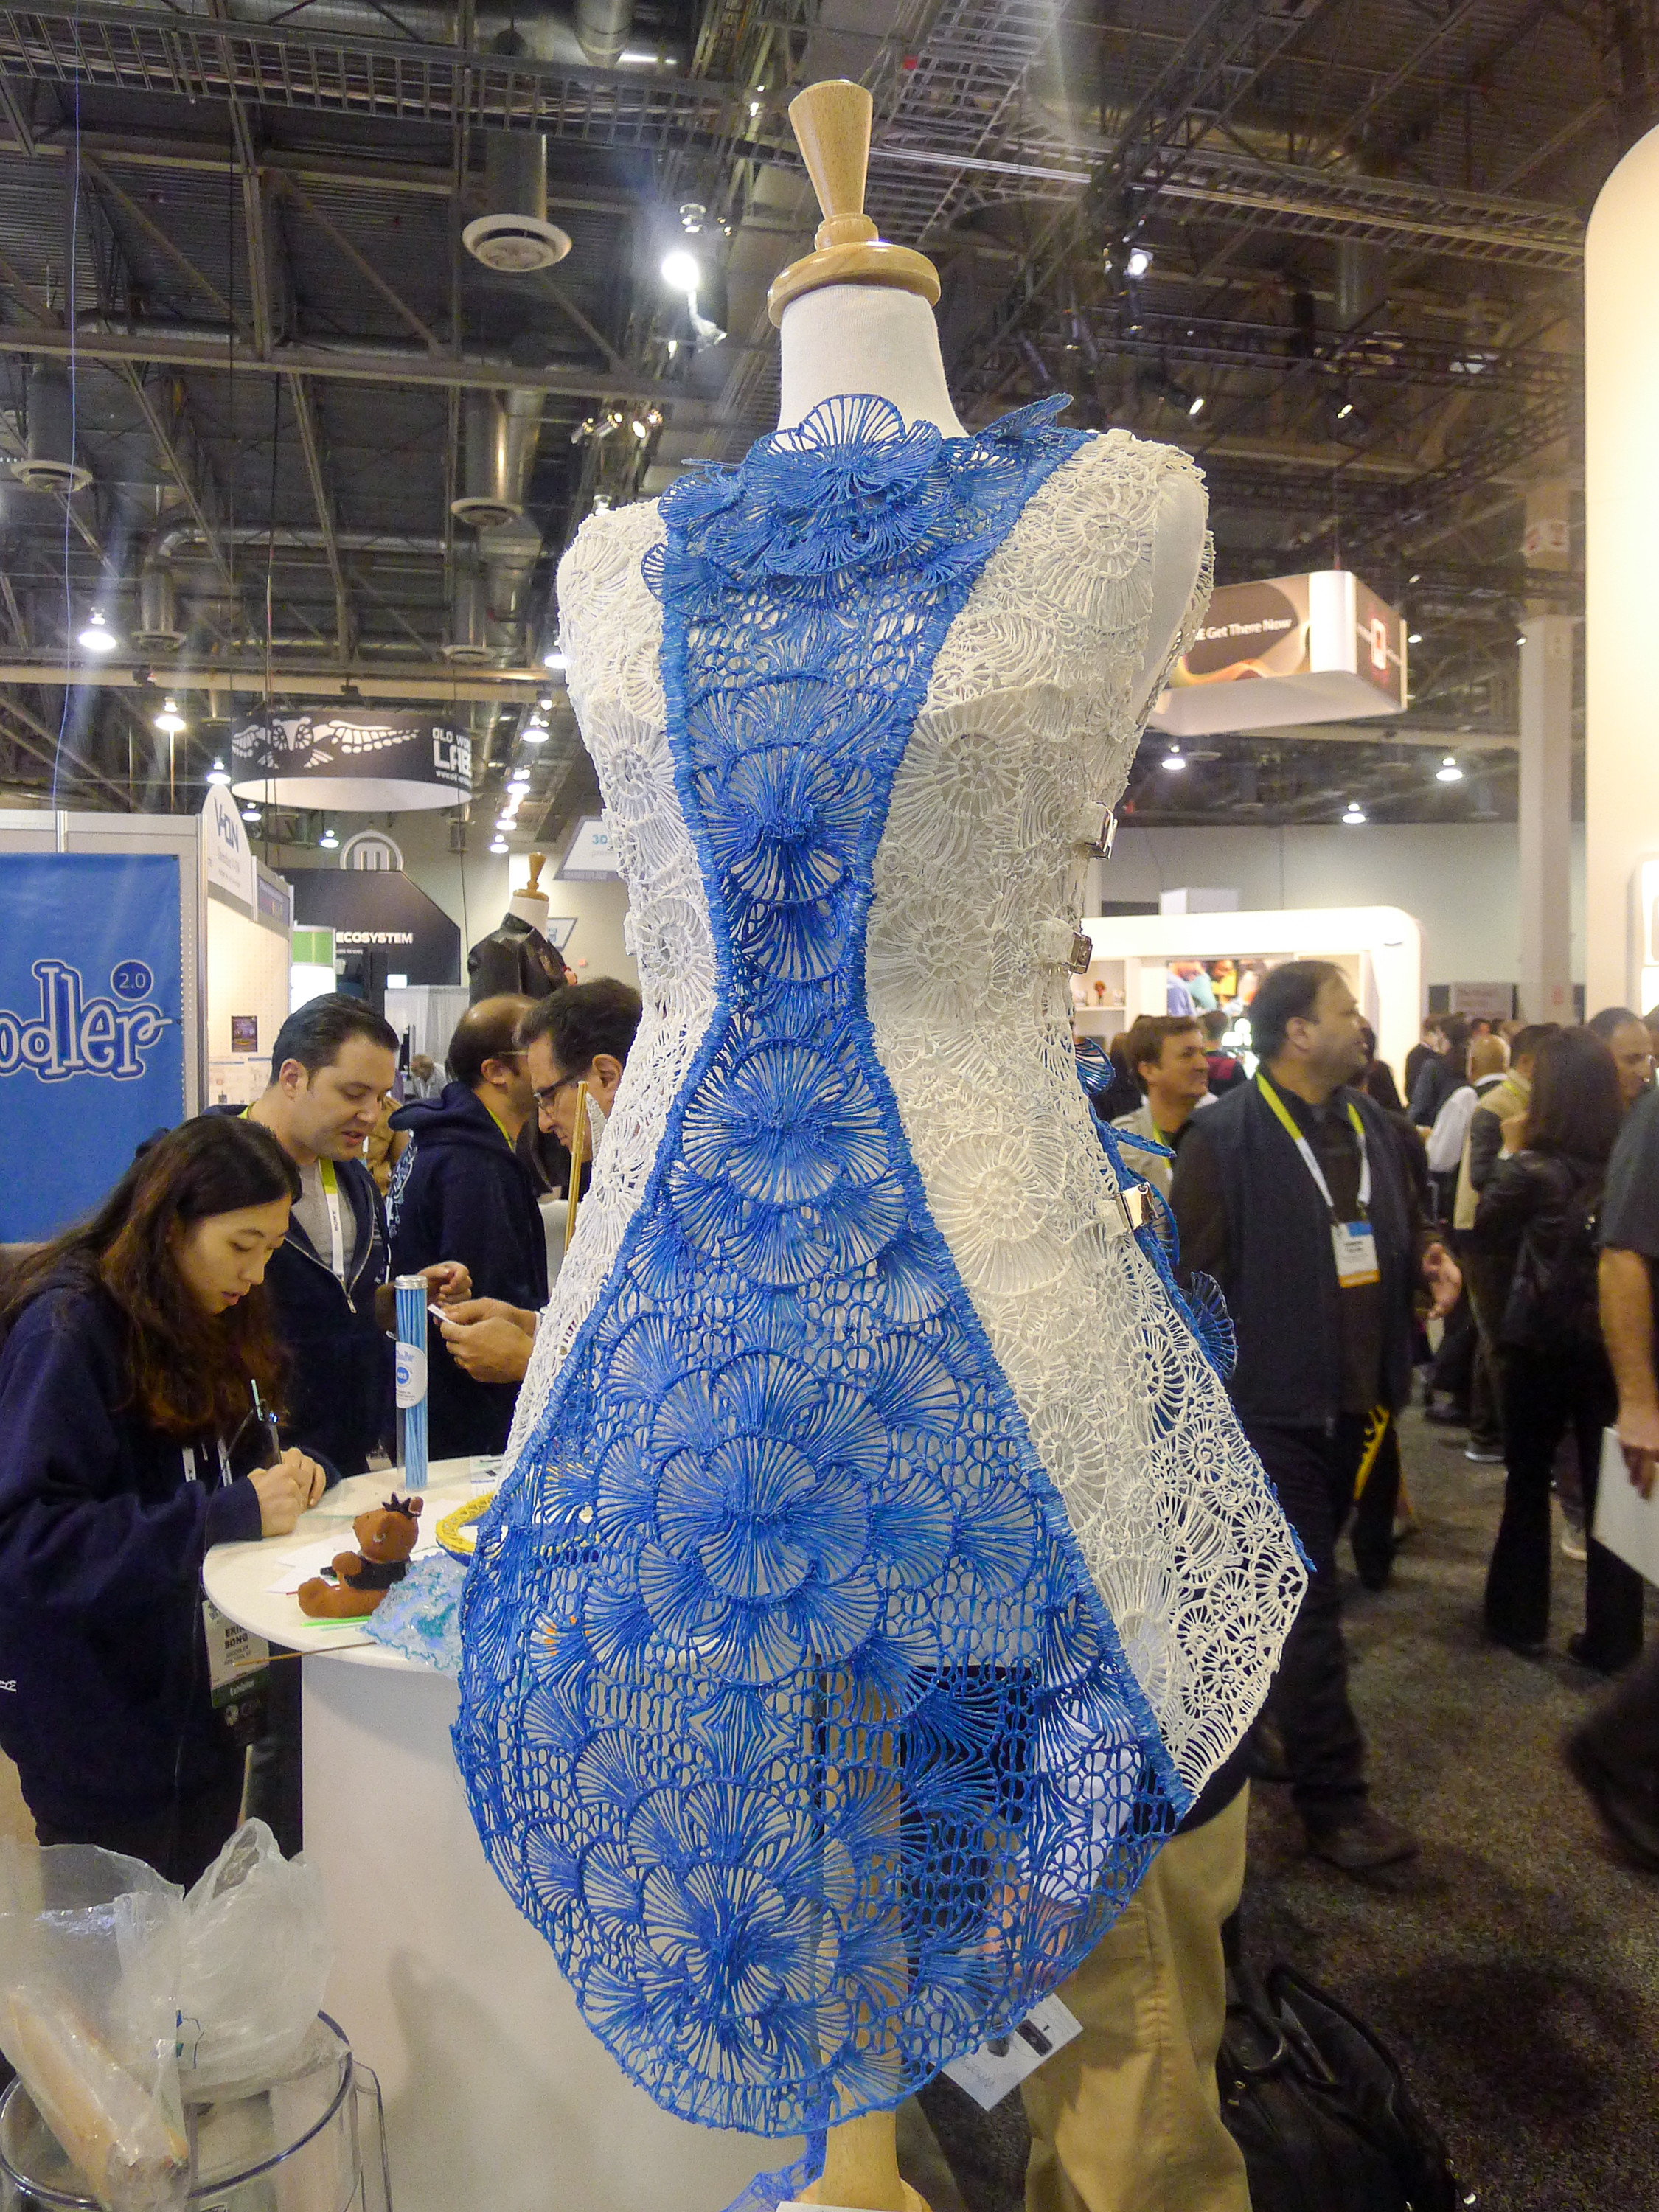 What Might Apparel Sourcing In The 3d Printing Era Look Like Fash455 Global Apparel Textile Trade And Sourcing